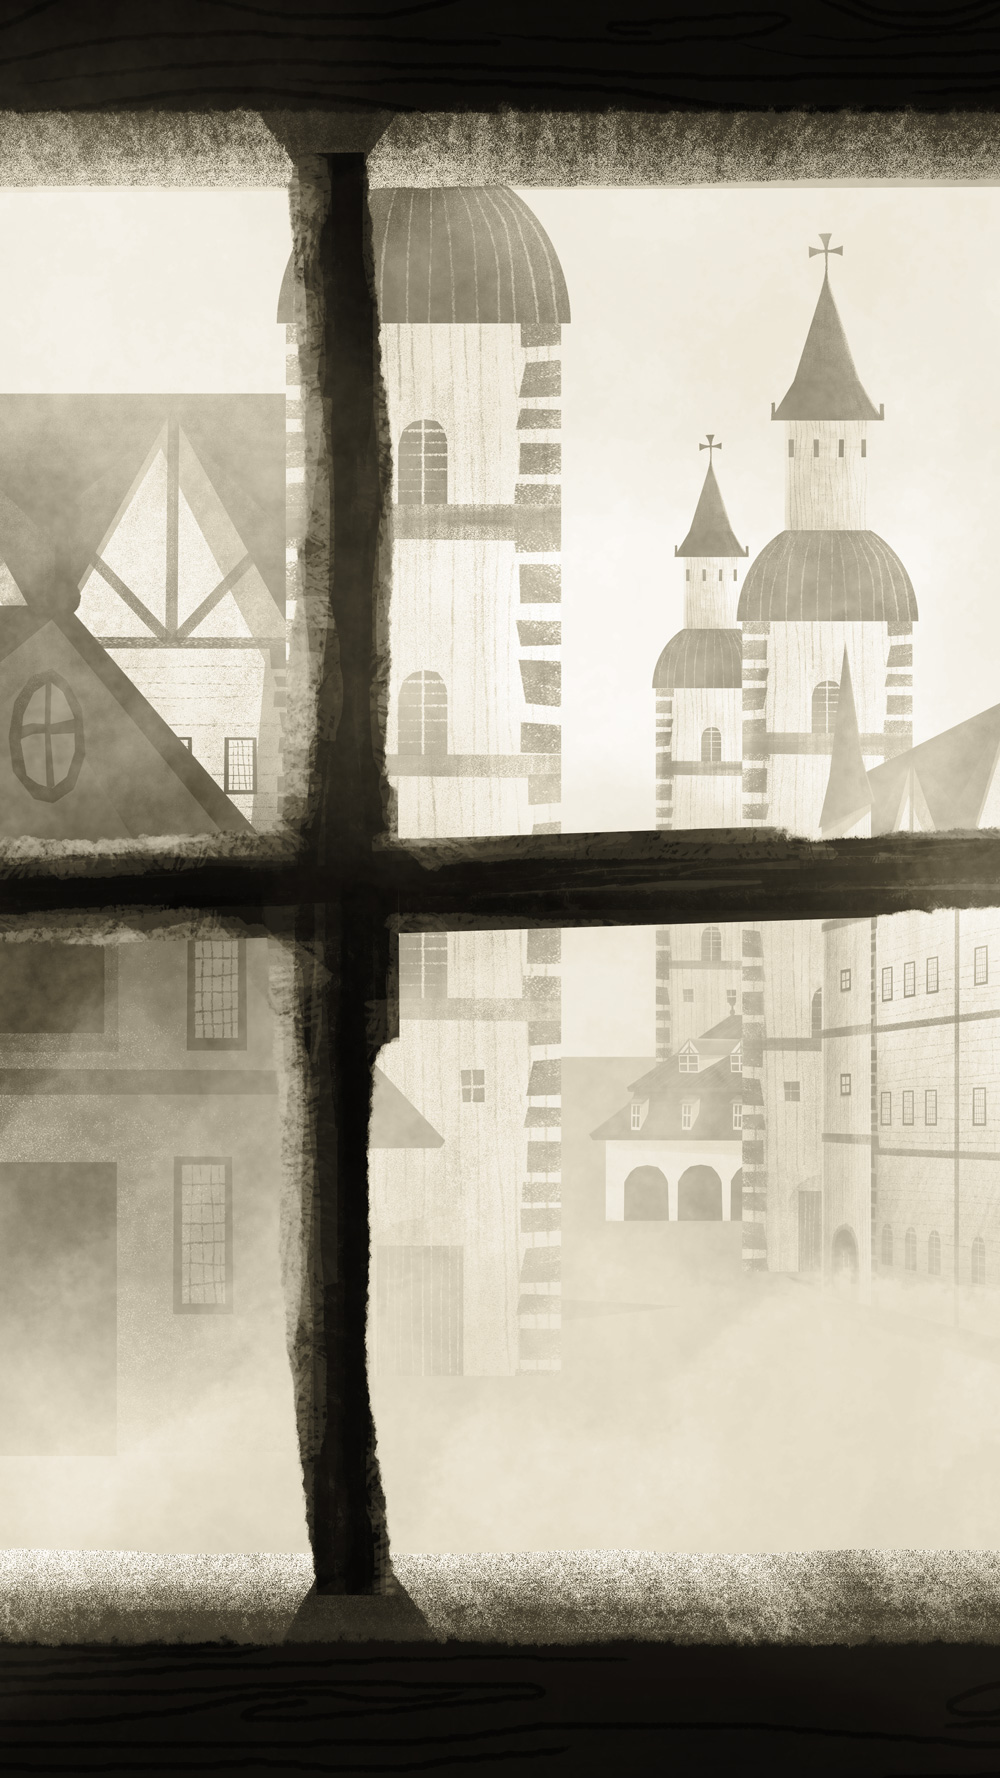 Illustration_concept_7_hiding-luther_SH01_closeup2.jpg